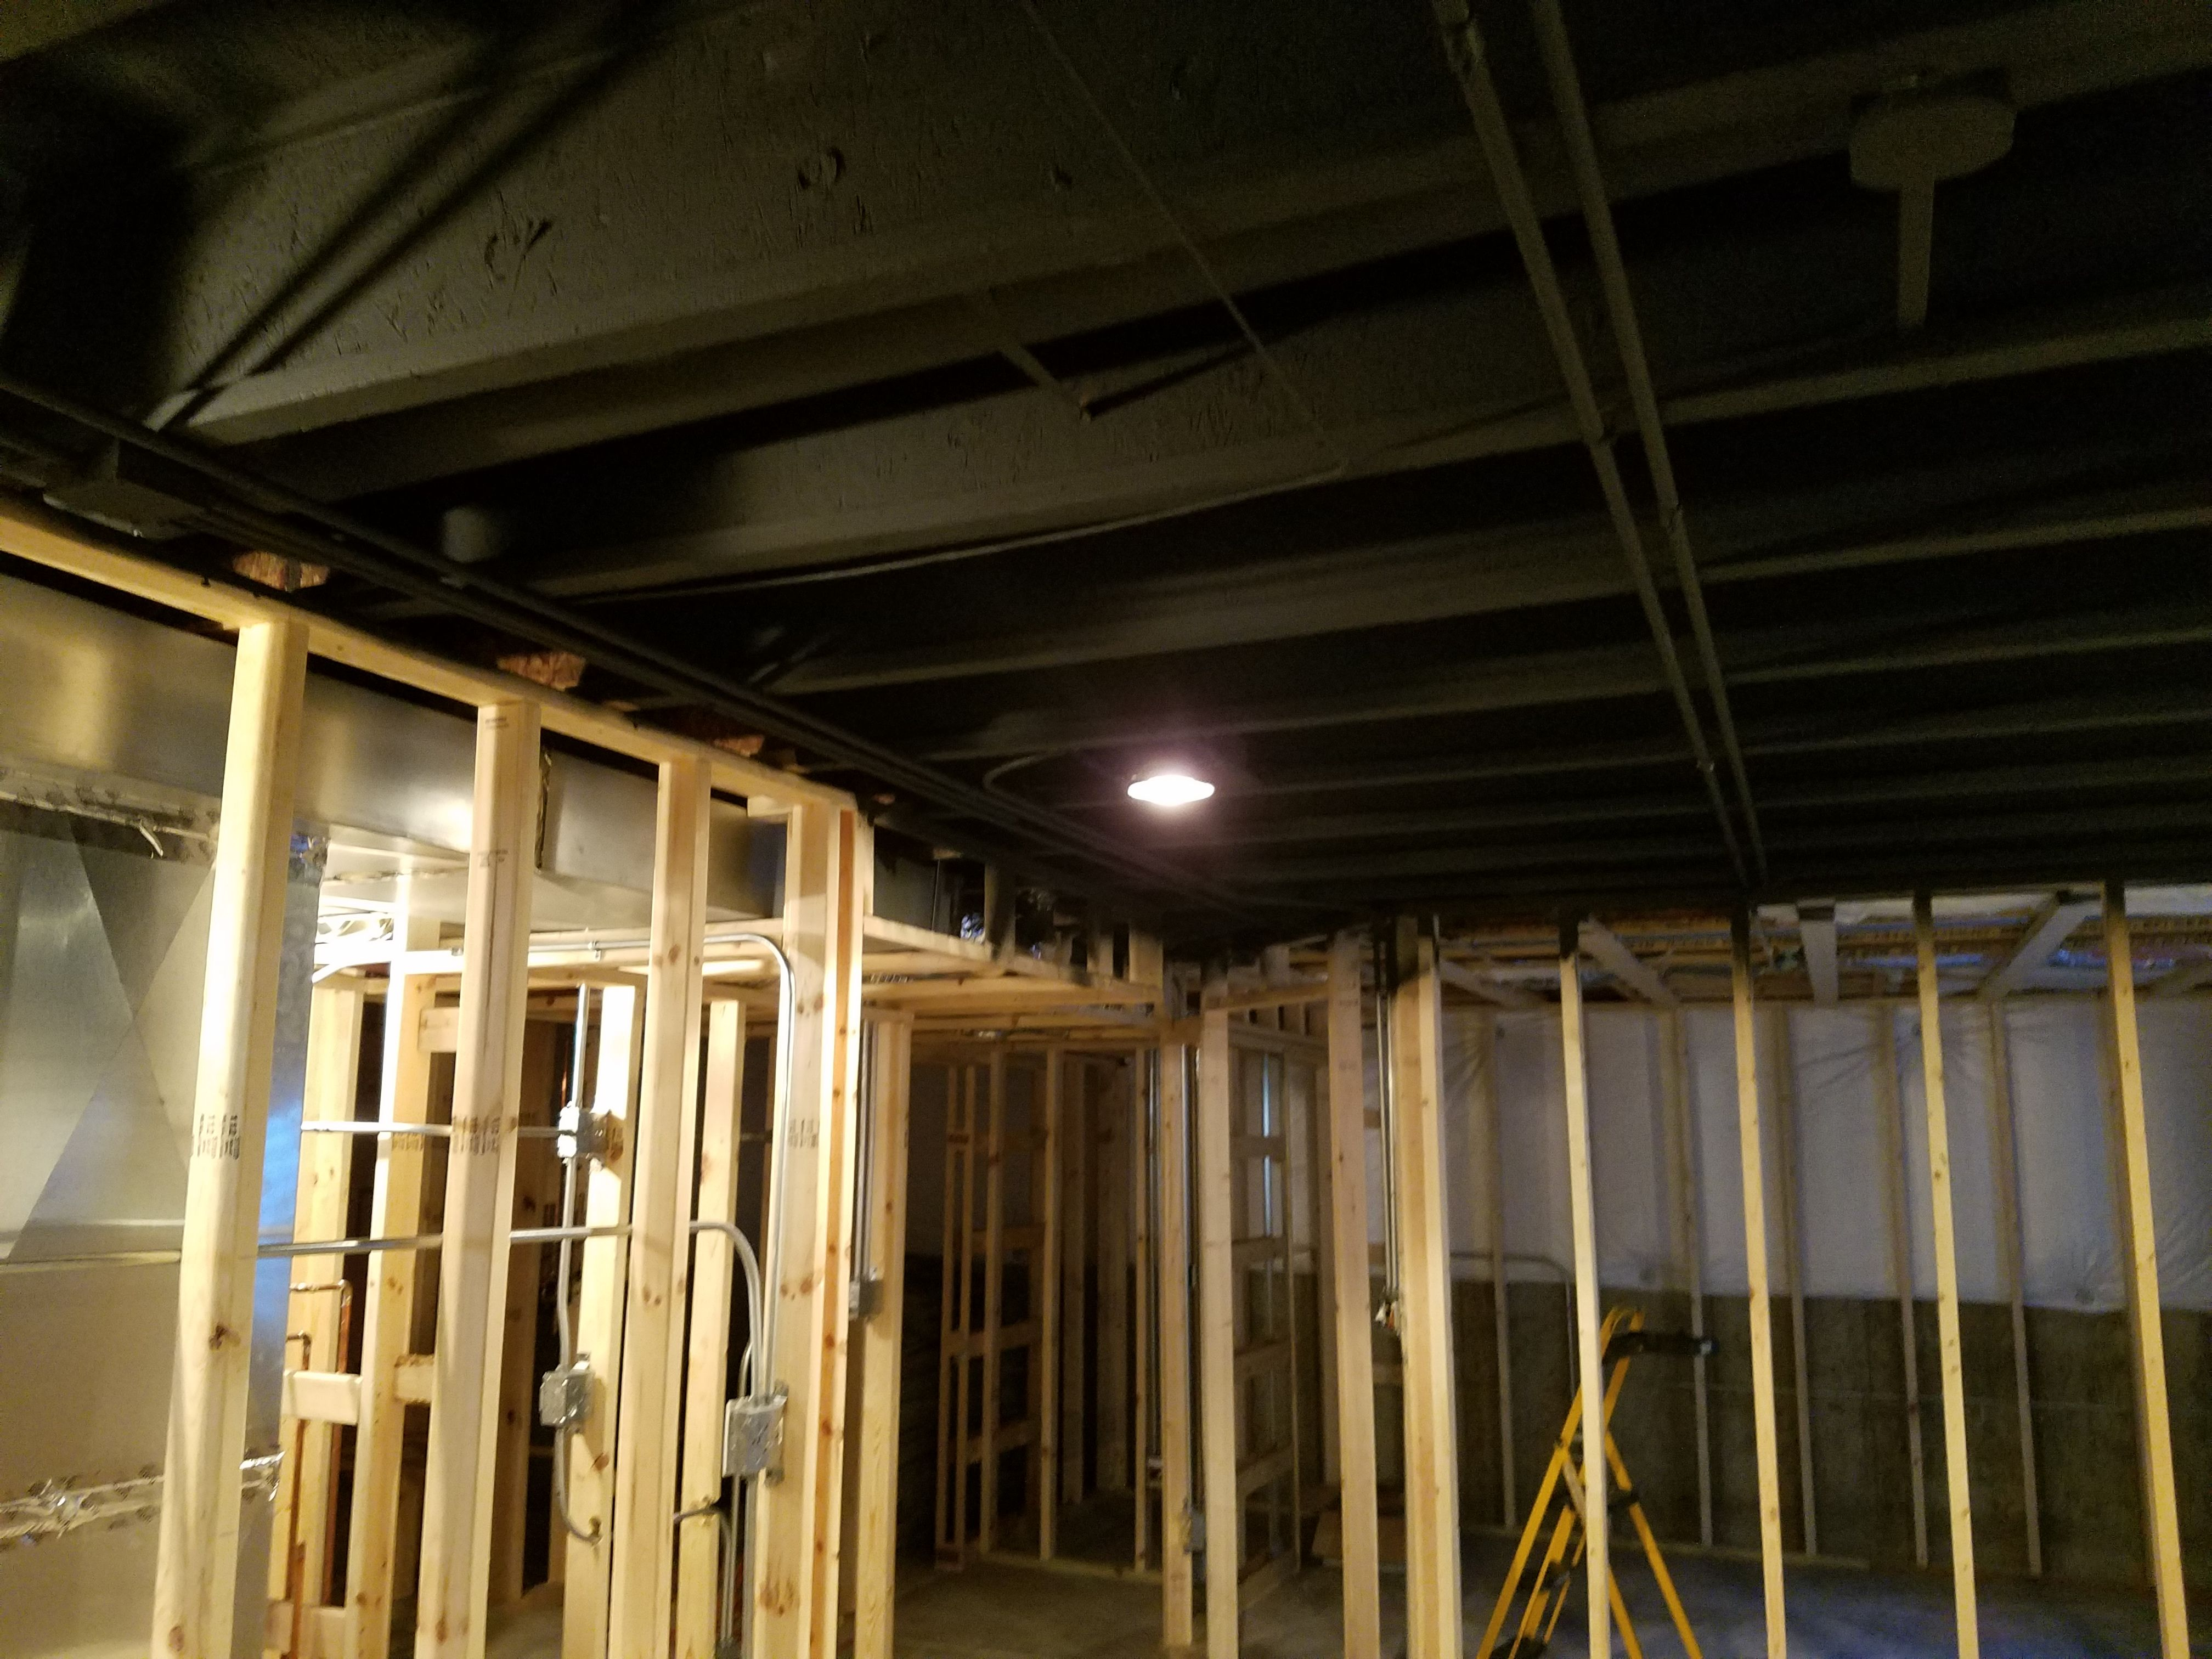 Basement Ceiling Painted Black Before Drywall Basement Ceiling Basement Ceiling Painted Basement Inspiration